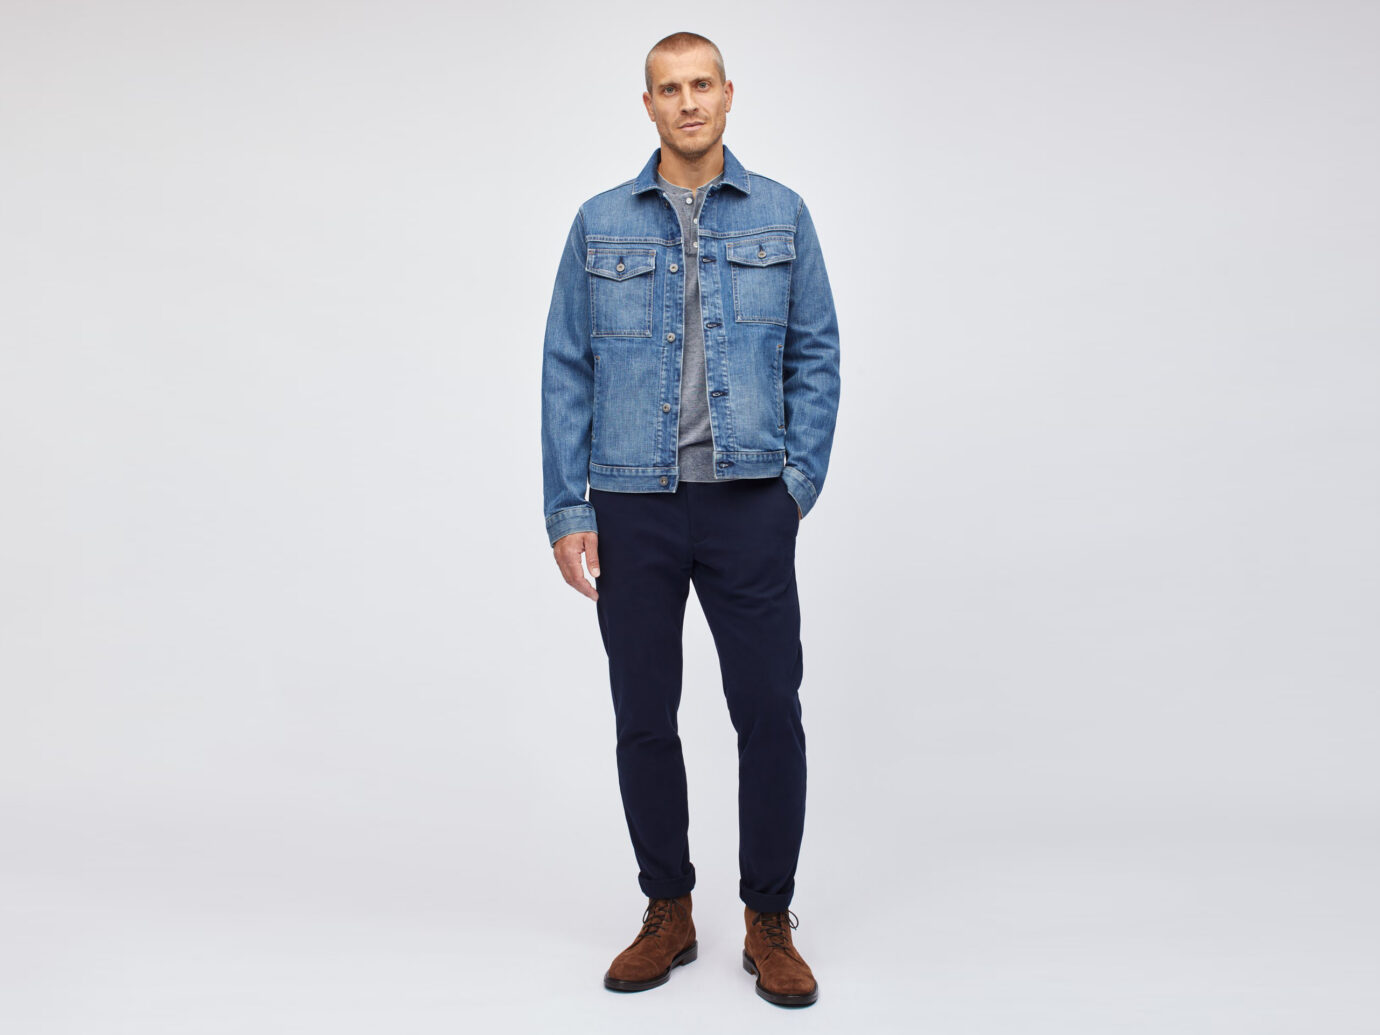 Bonobos The Stretch Denim Jacket